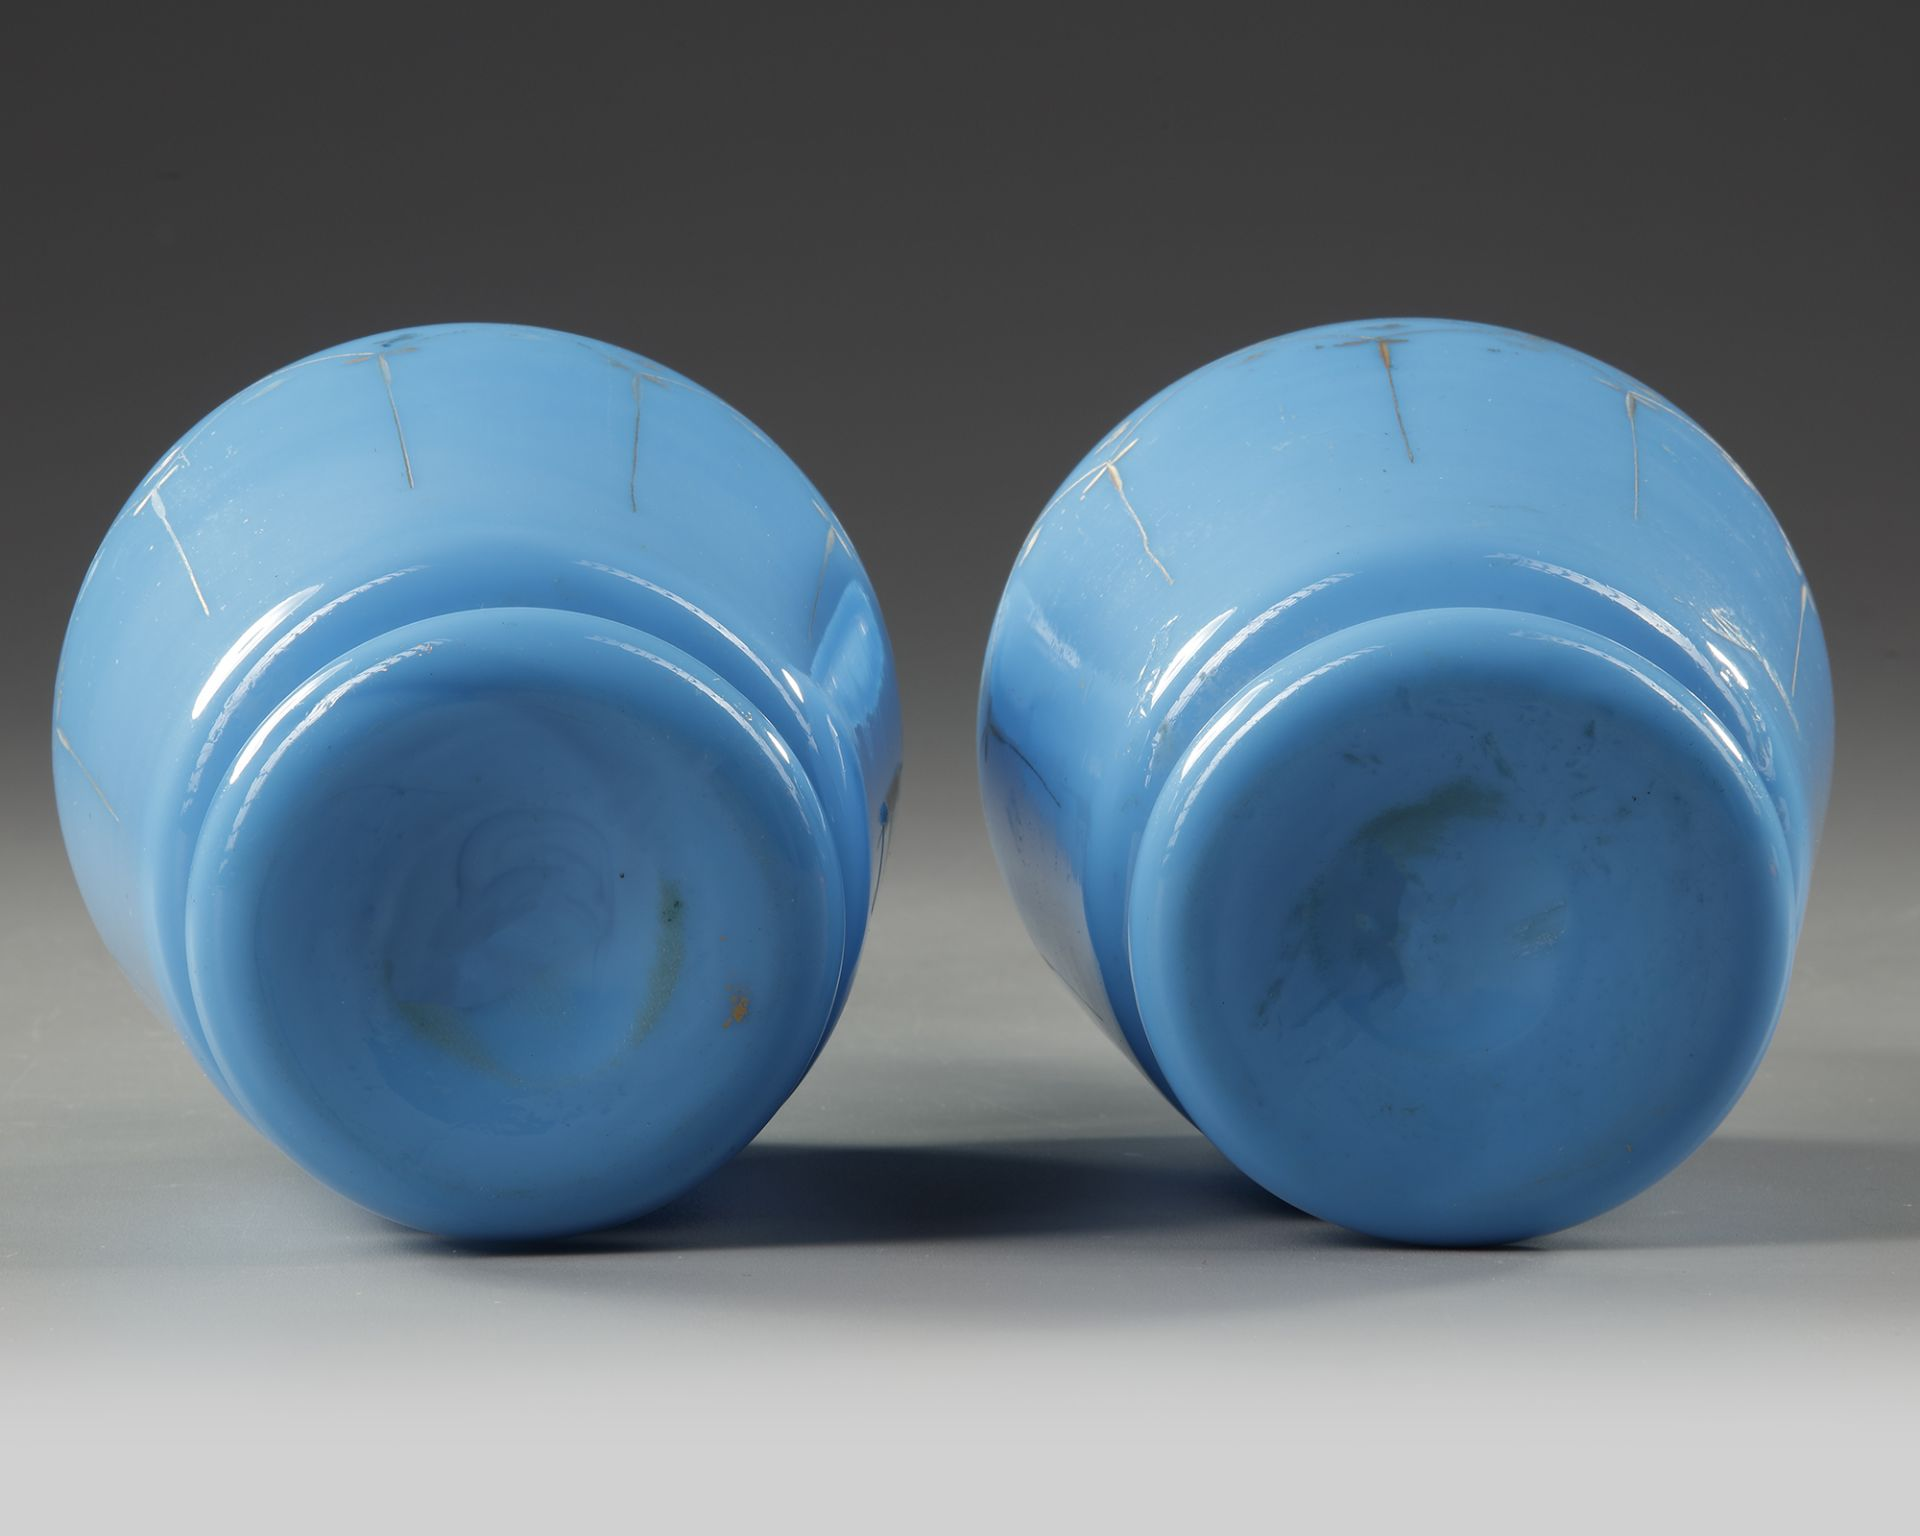 A PAIR OF OPALINE CARAFES, LATE 19TH CENTURY - Image 4 of 4